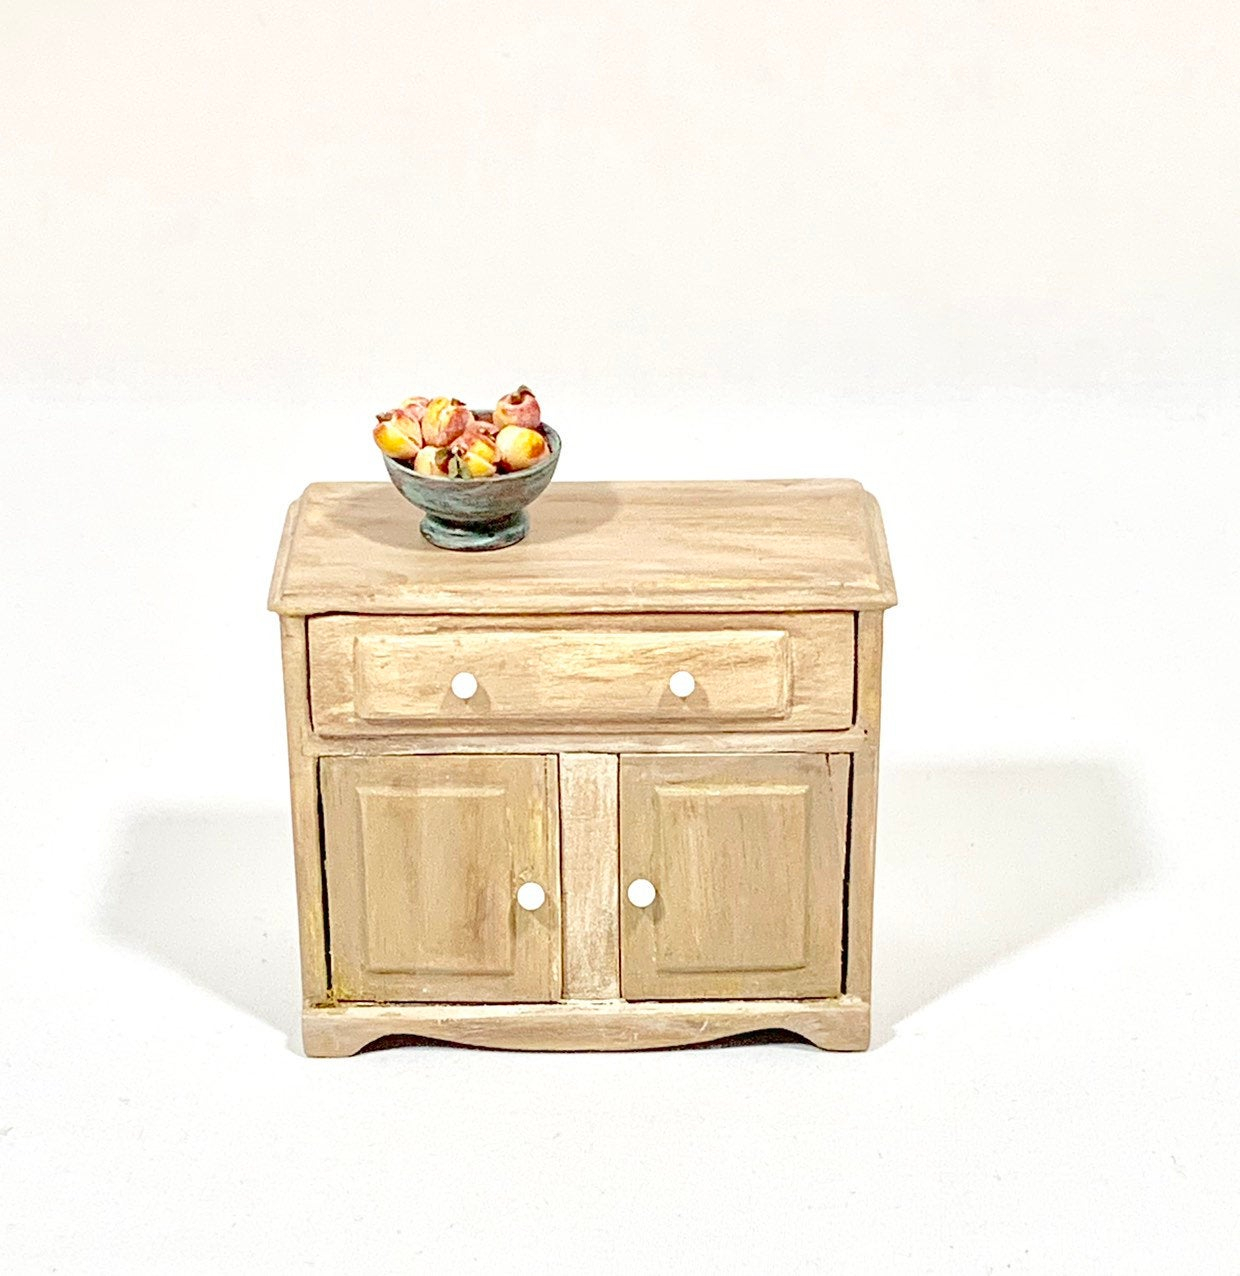 Upcycled Vintage Wood Dollhouse Buffet Table Hutch Miniature Wooden Doll  Furniture throughout Deep Blue Fern Credenzas (Image 29 of 30)